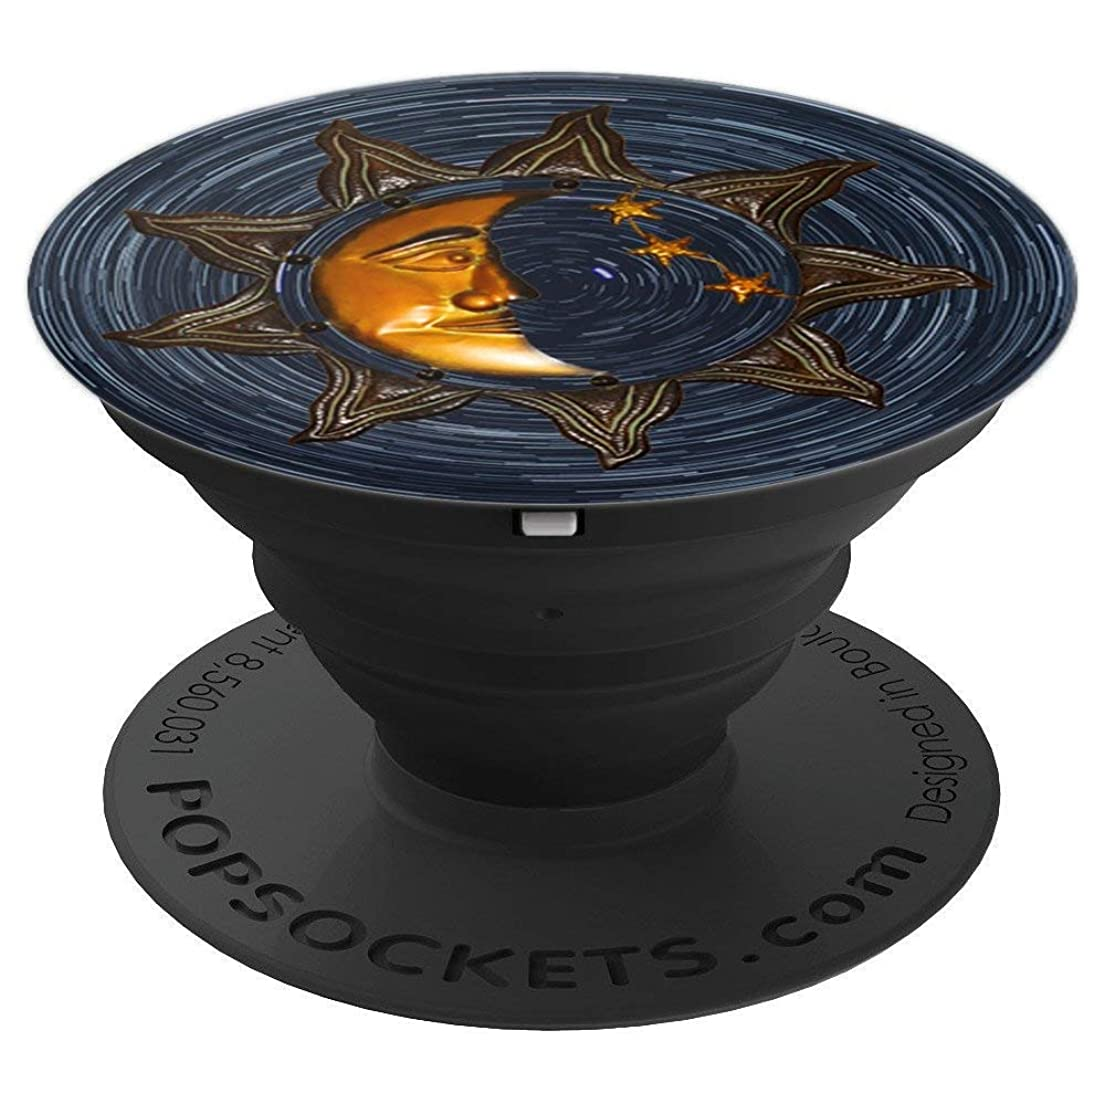 Gold and Black Vintage Moon Sun and Stars & Design - PopSockets Grip and Stand for Phones and Tablets gjxiy3805789589